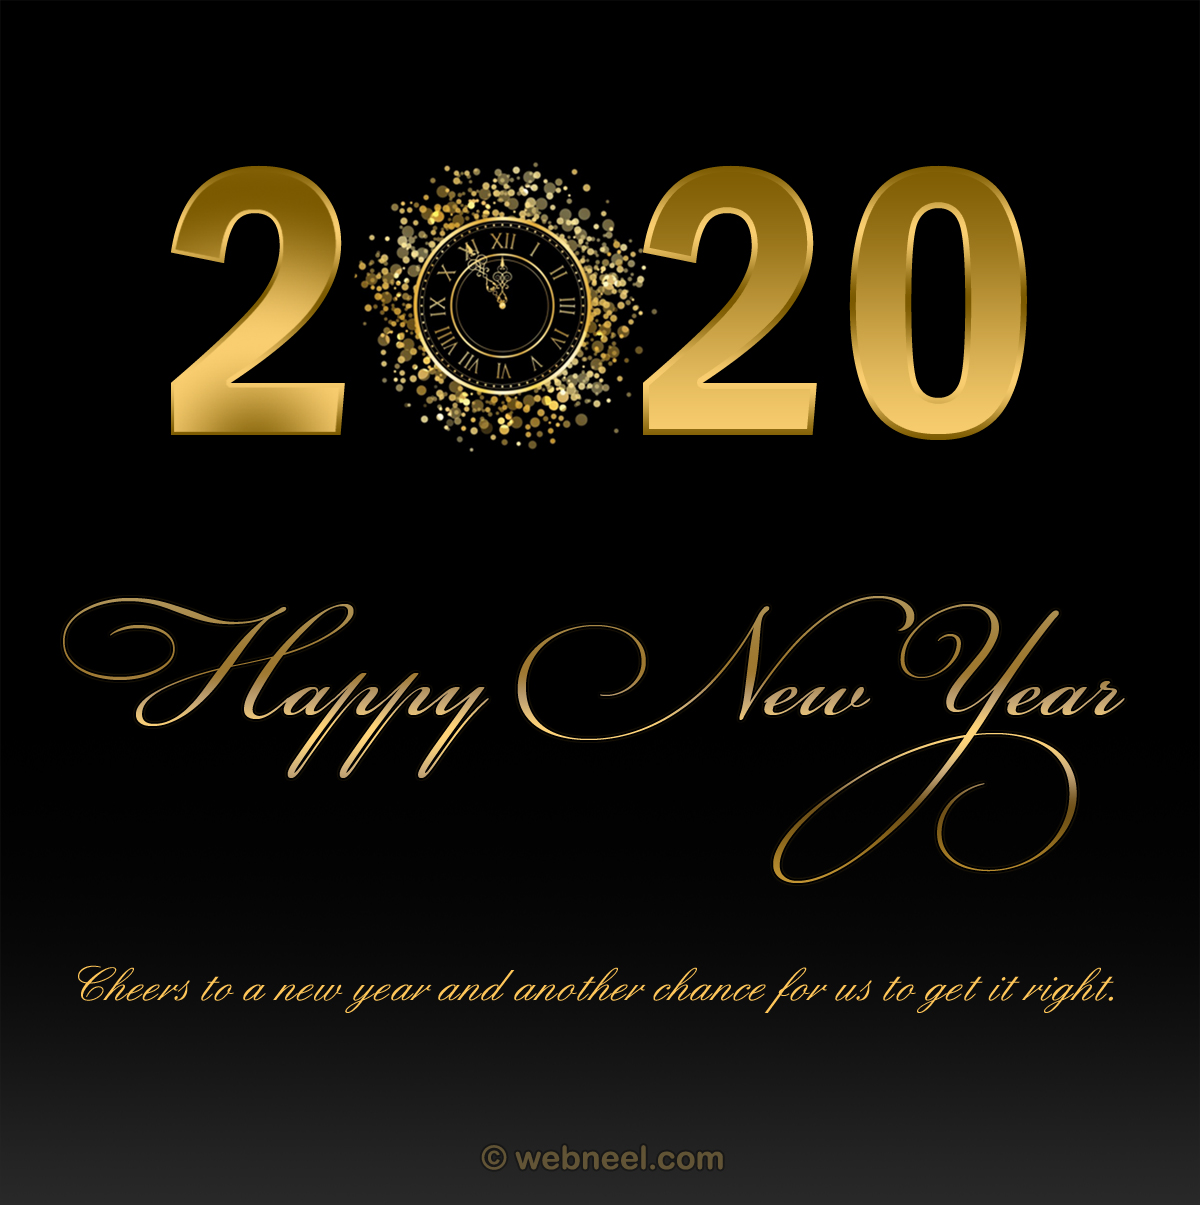 new year greeting cards 2020